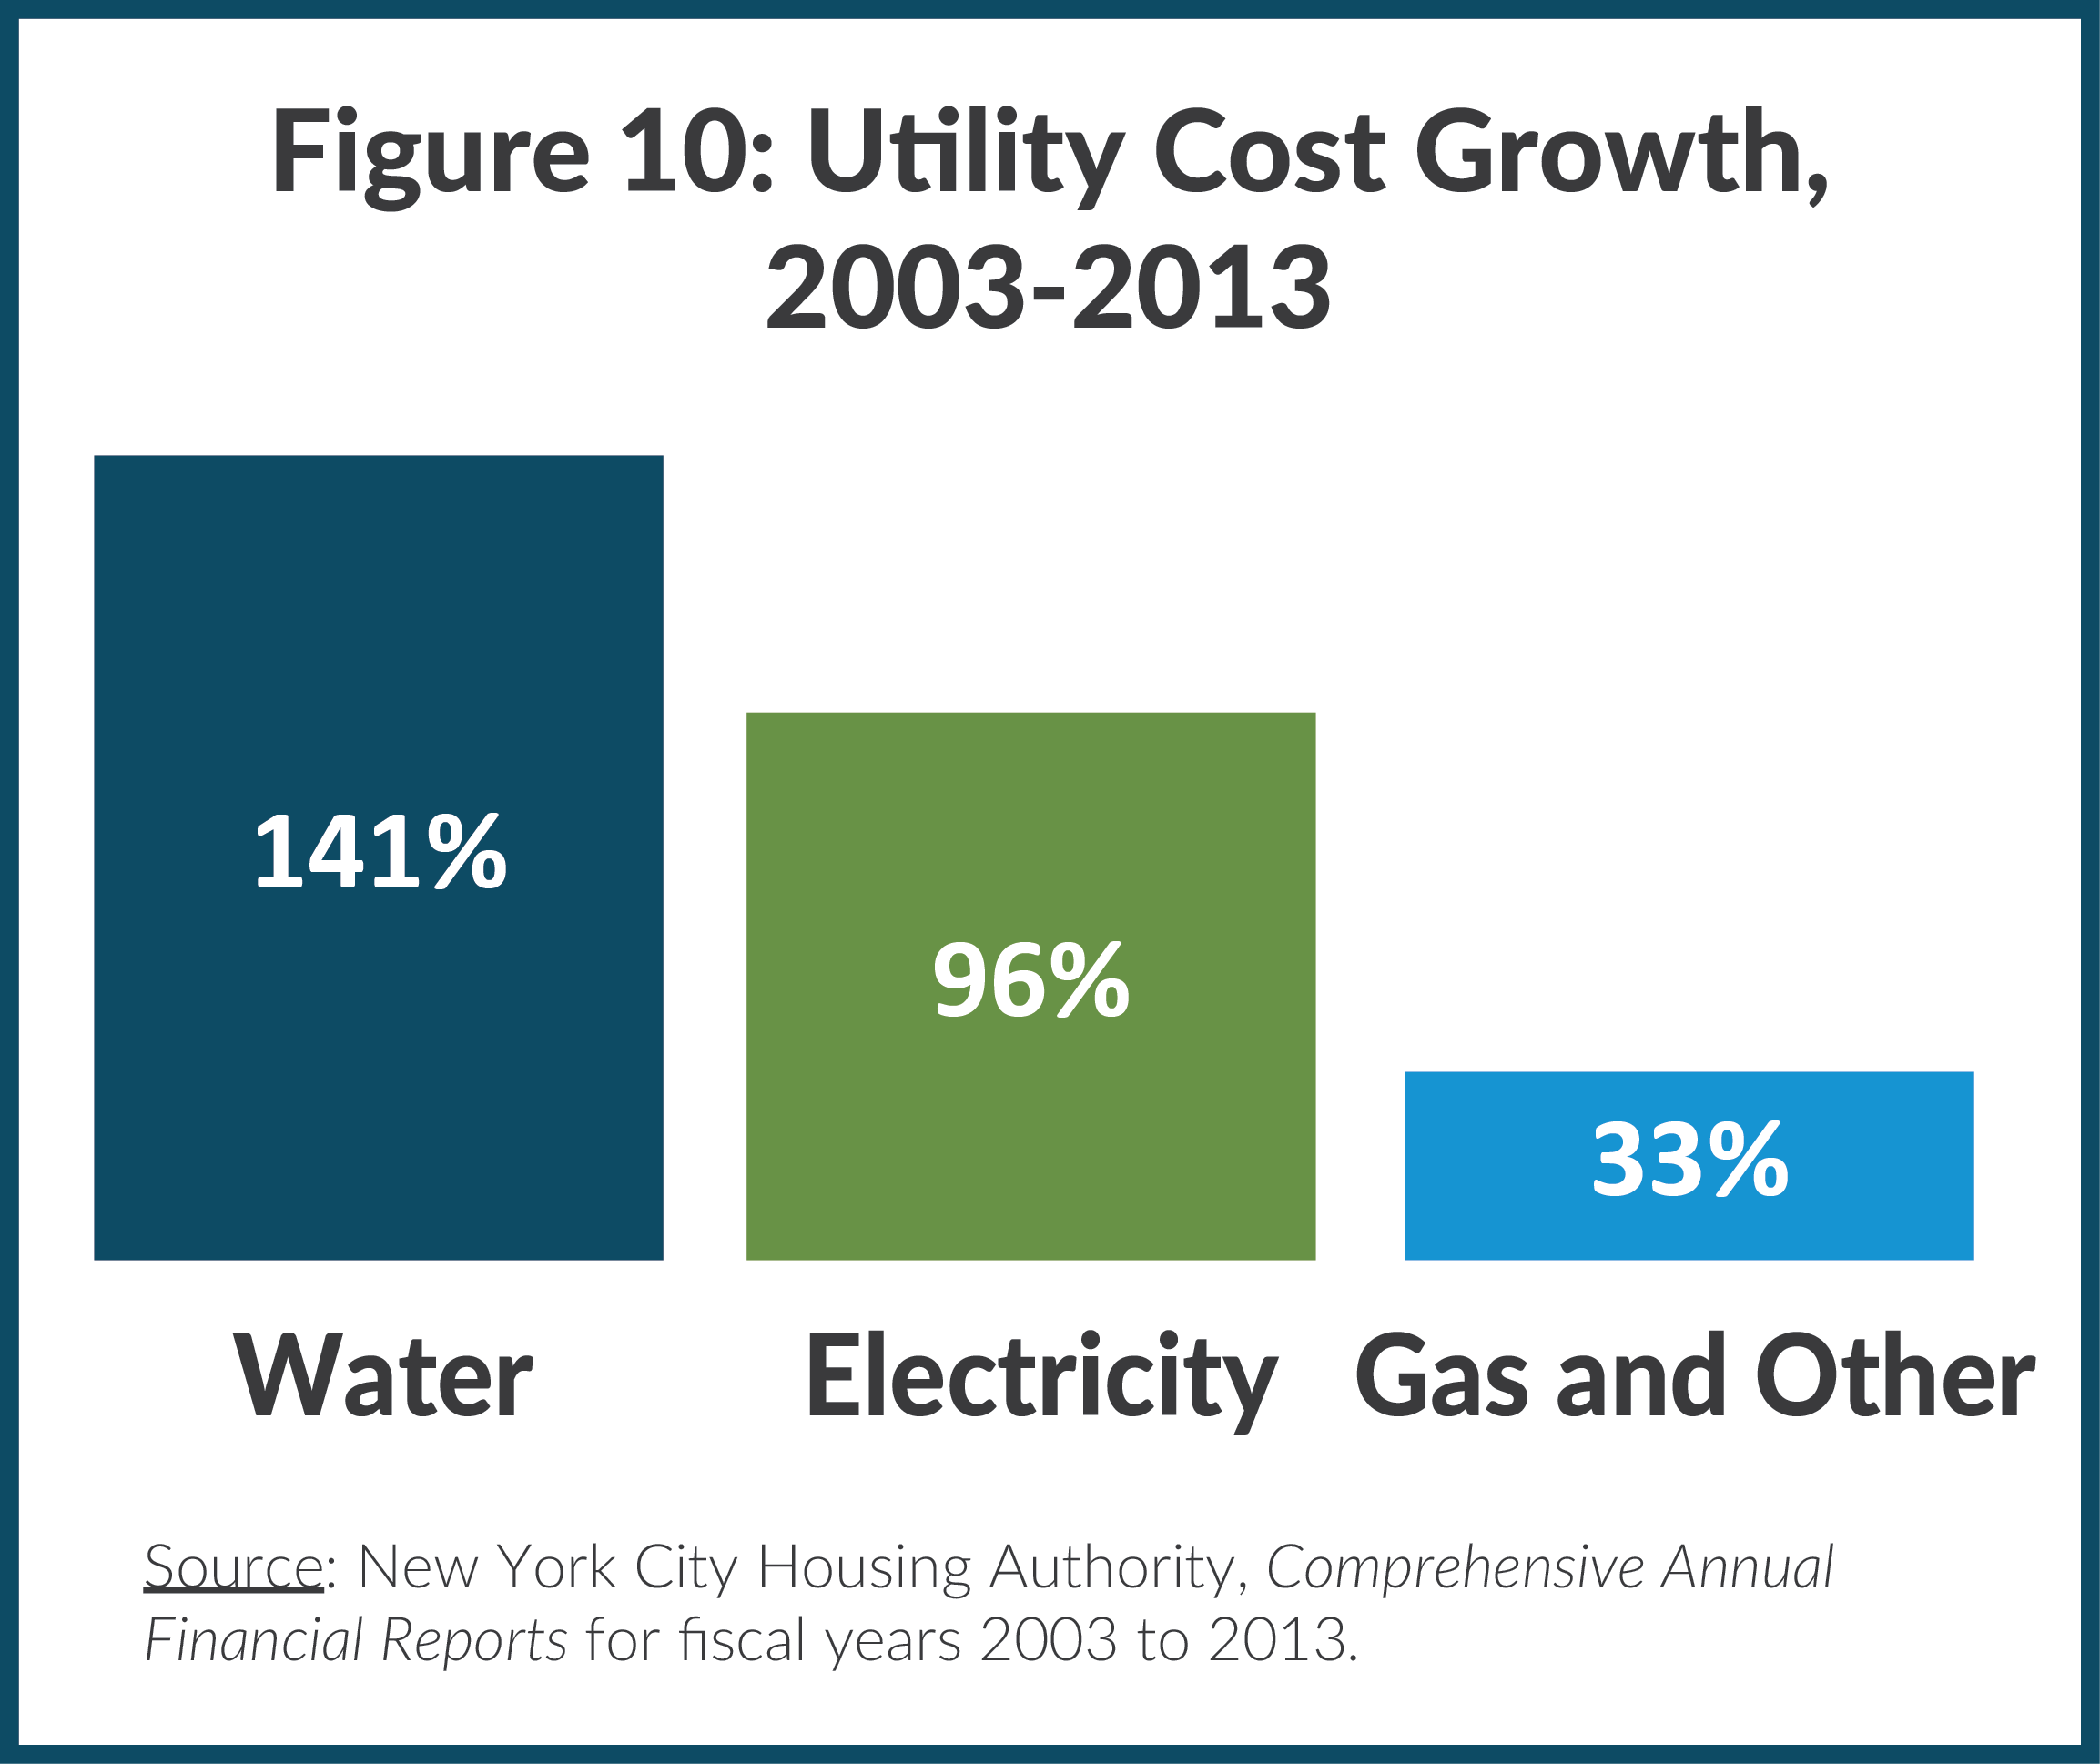 Figure 10: Utility Cost Growth, 2003-2013